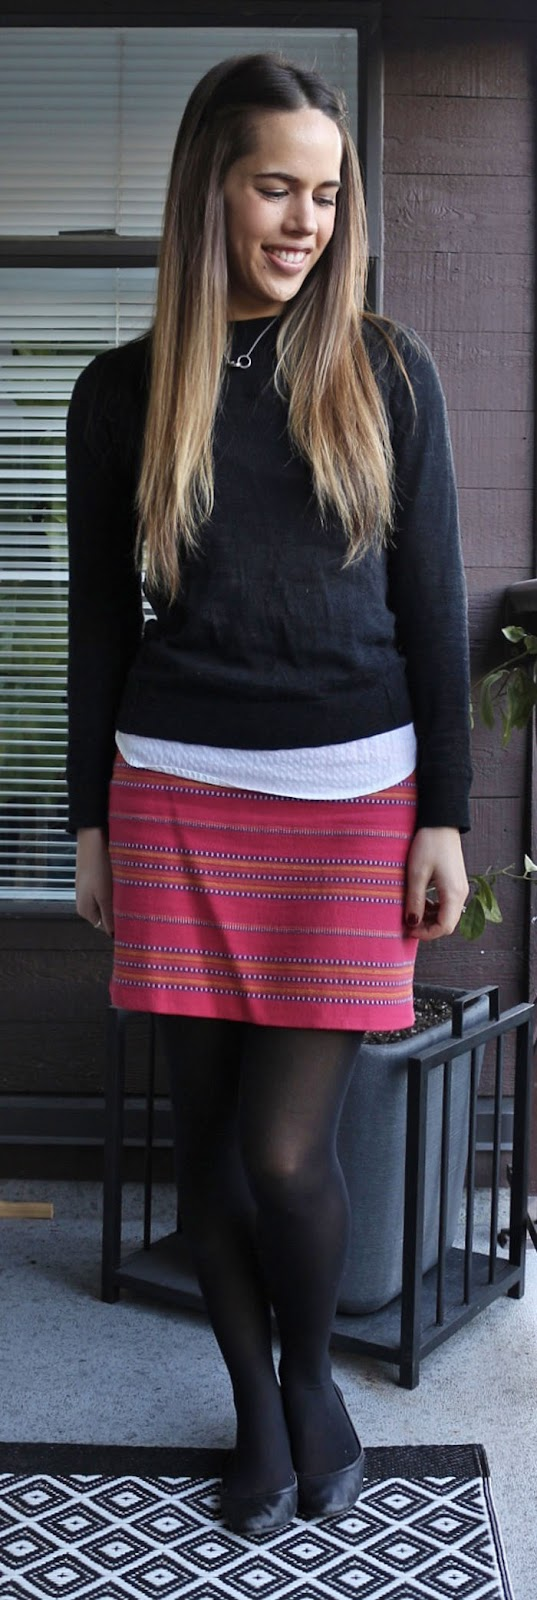 Jules in Flats - Gap Factory striped skirt, Gap Sweater